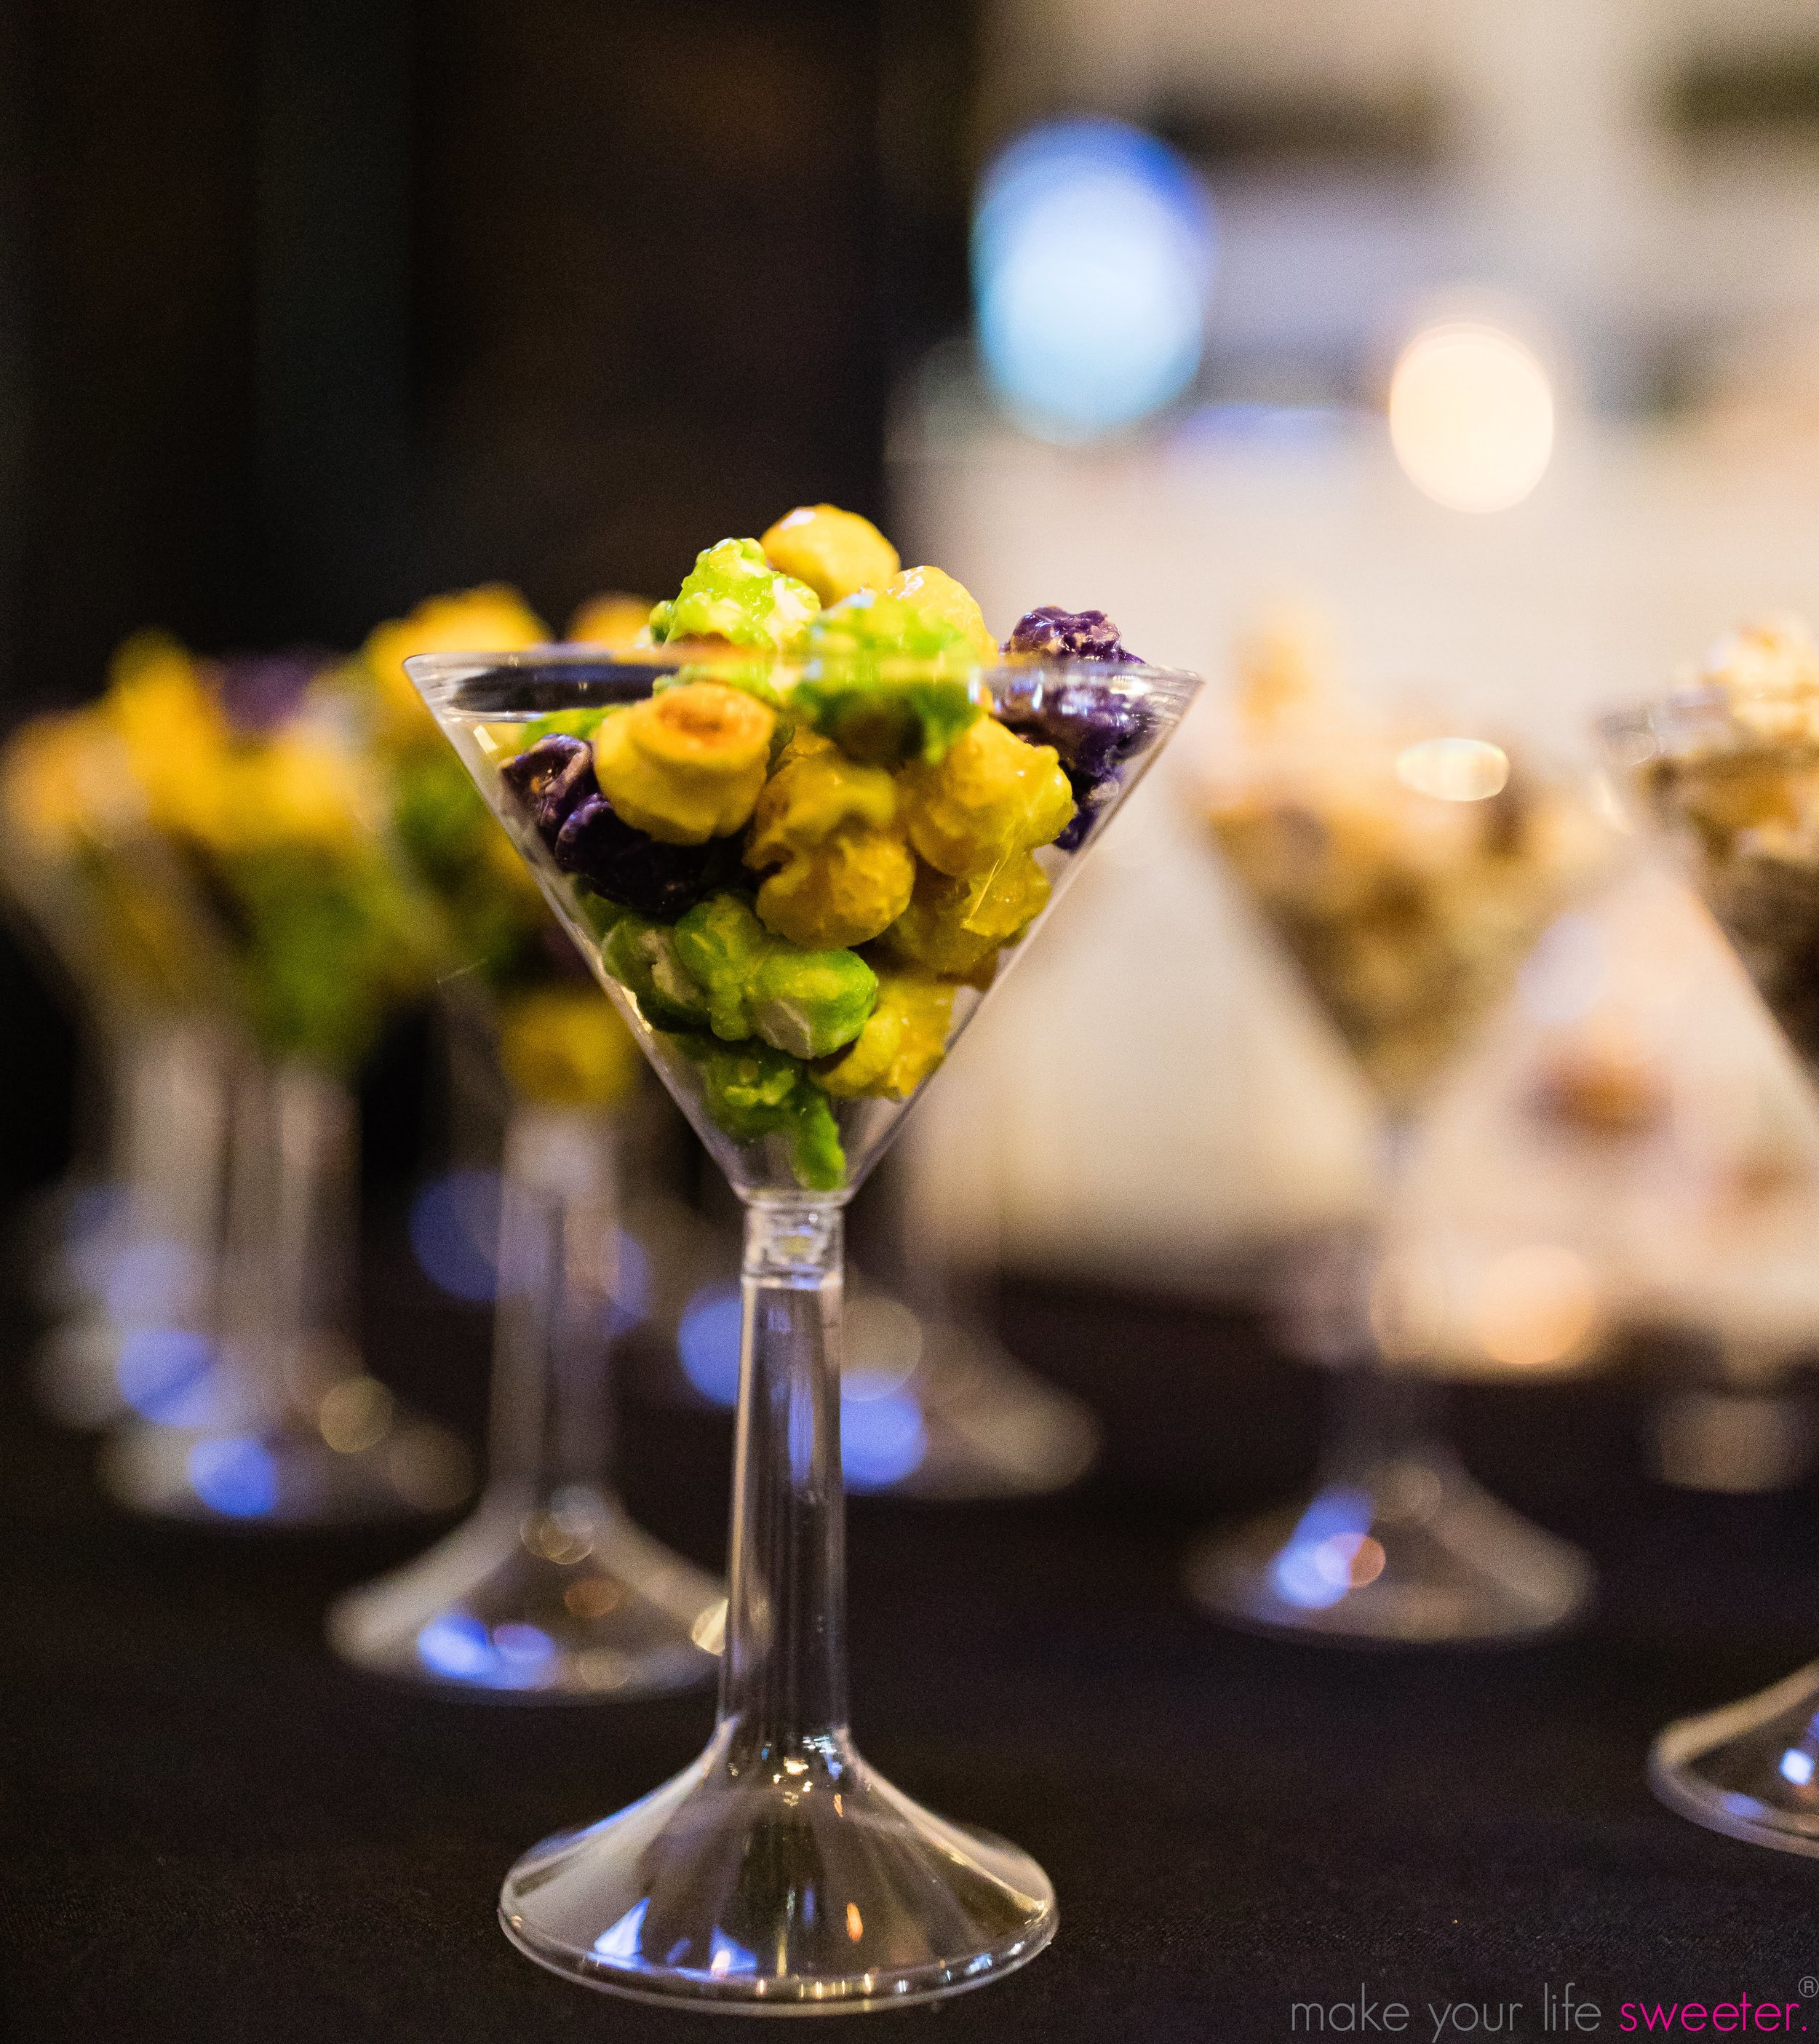 Make Your Life Sweeter Events - PWC New Orleans - HotPoppin Gourmet Popcorn Bar